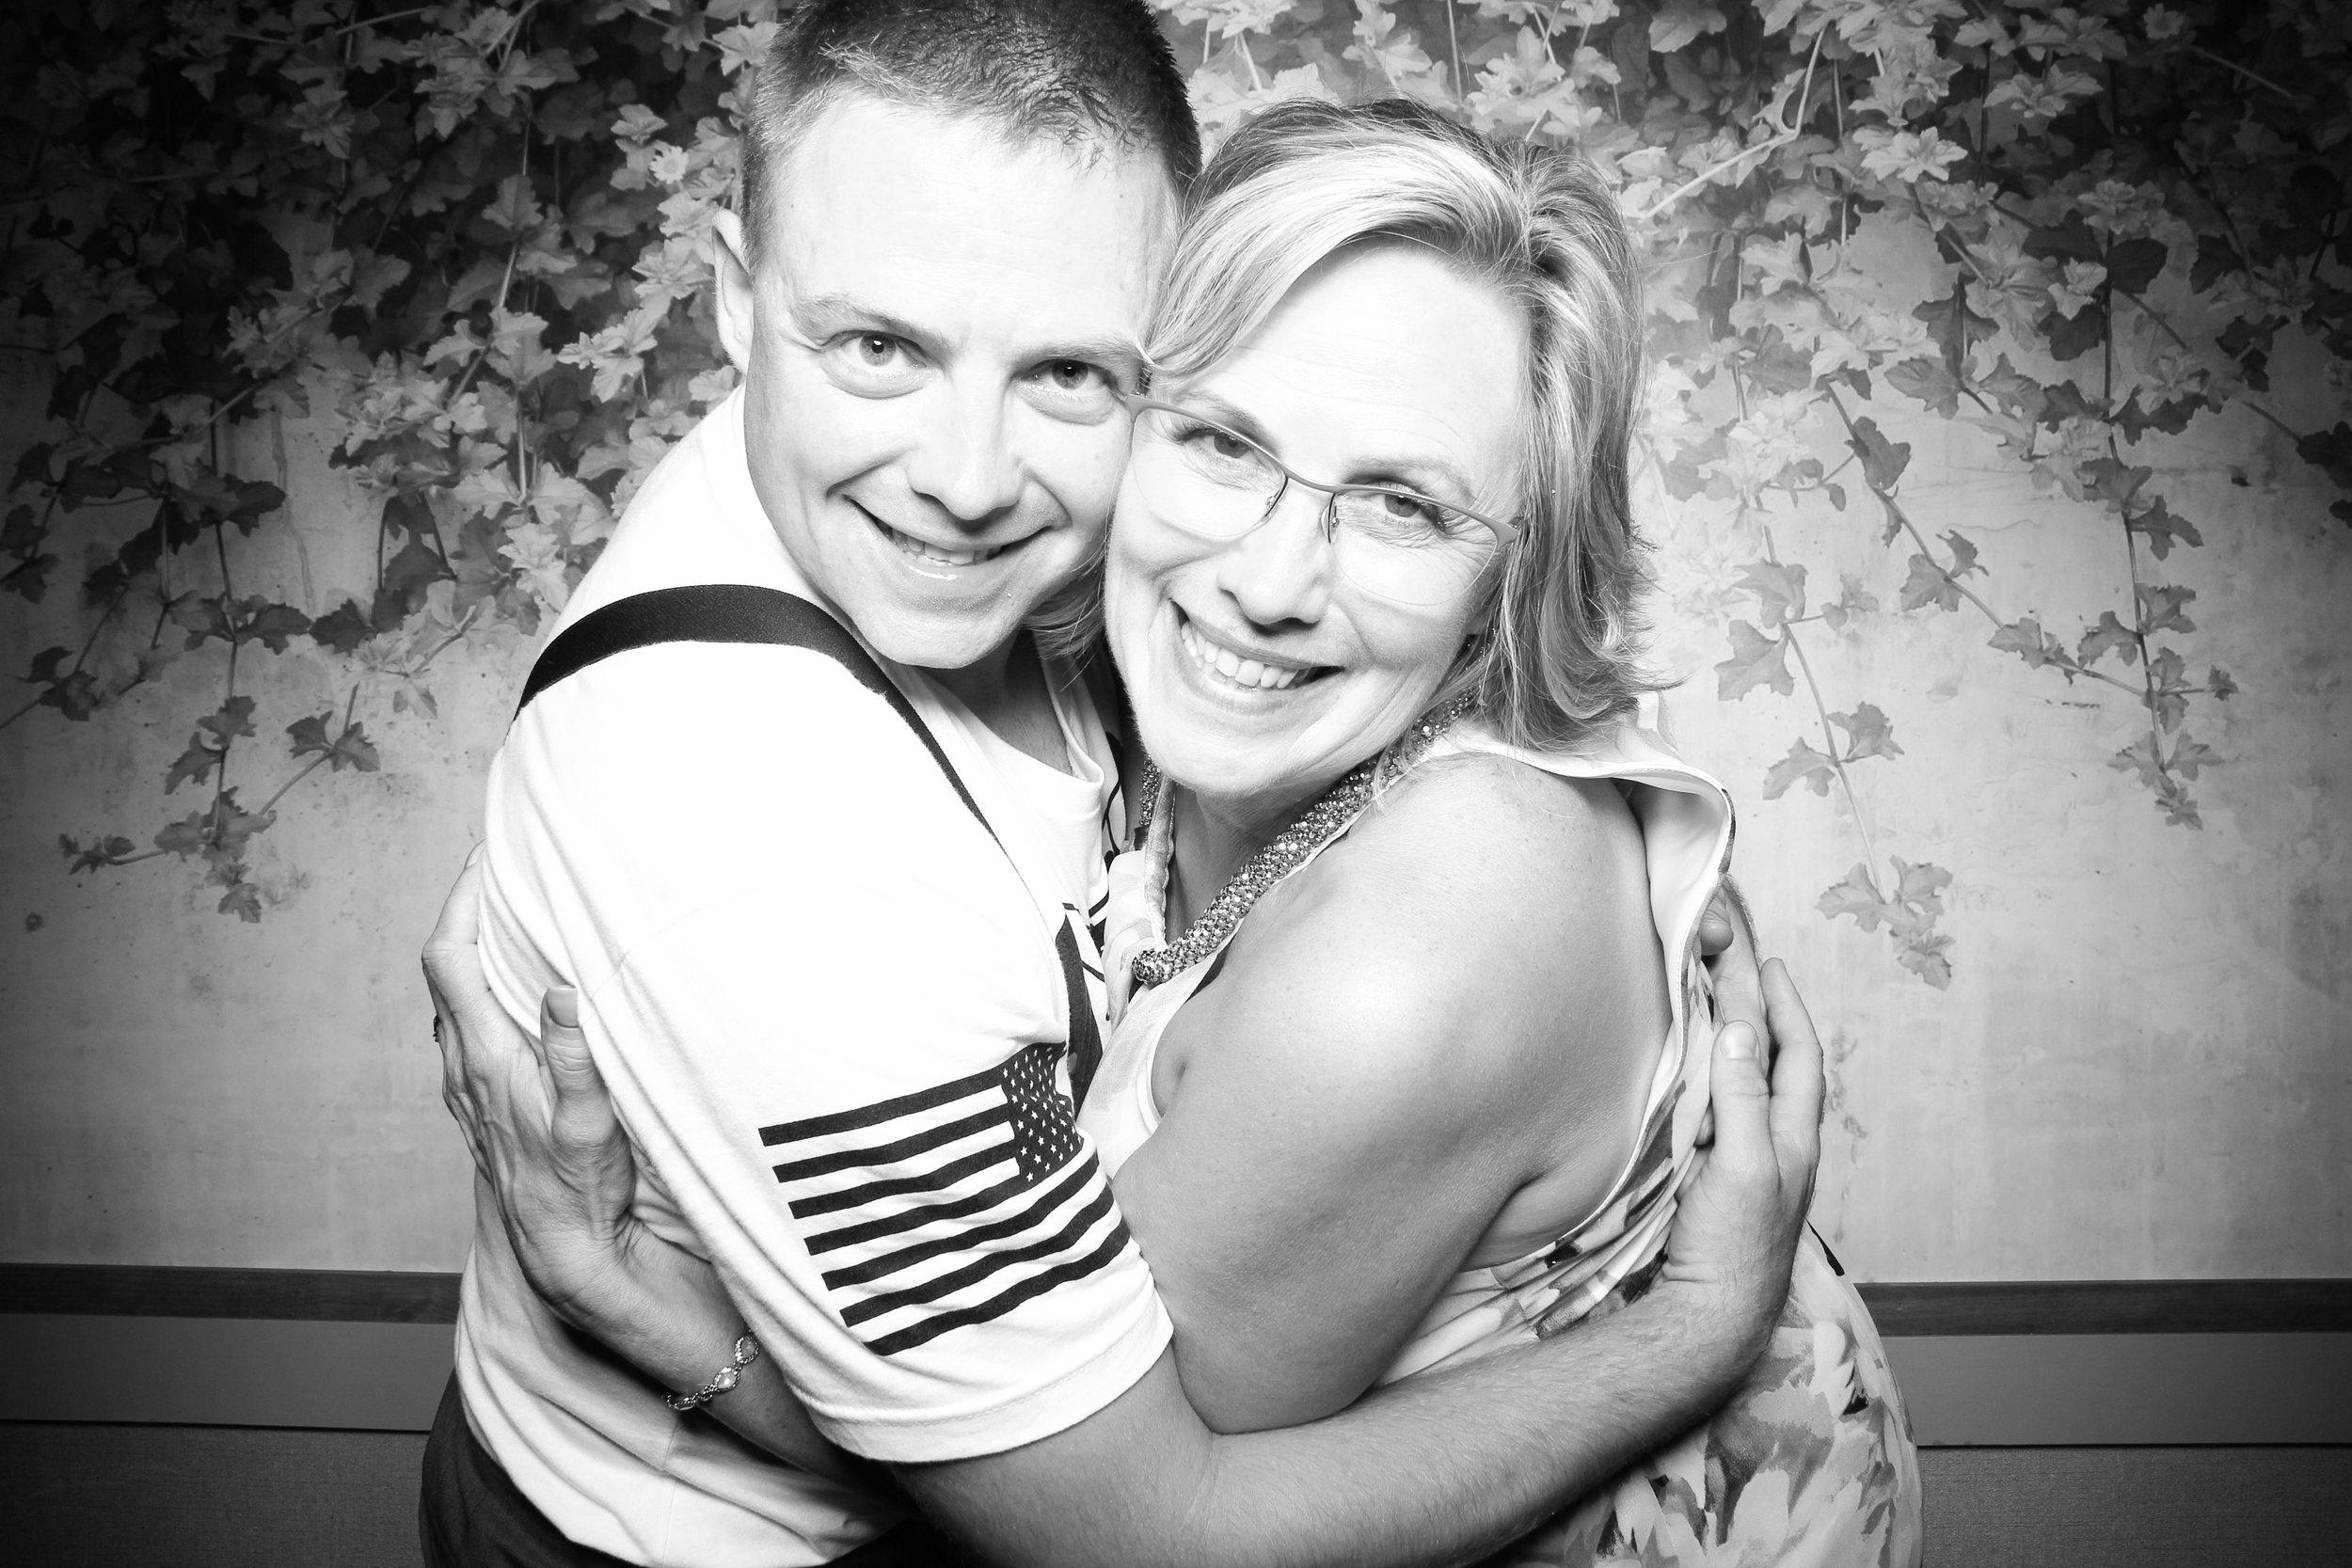 Randall_Oaks_Country_Club_Wedding_West_Dundee_Photo_Booth_28.jpg